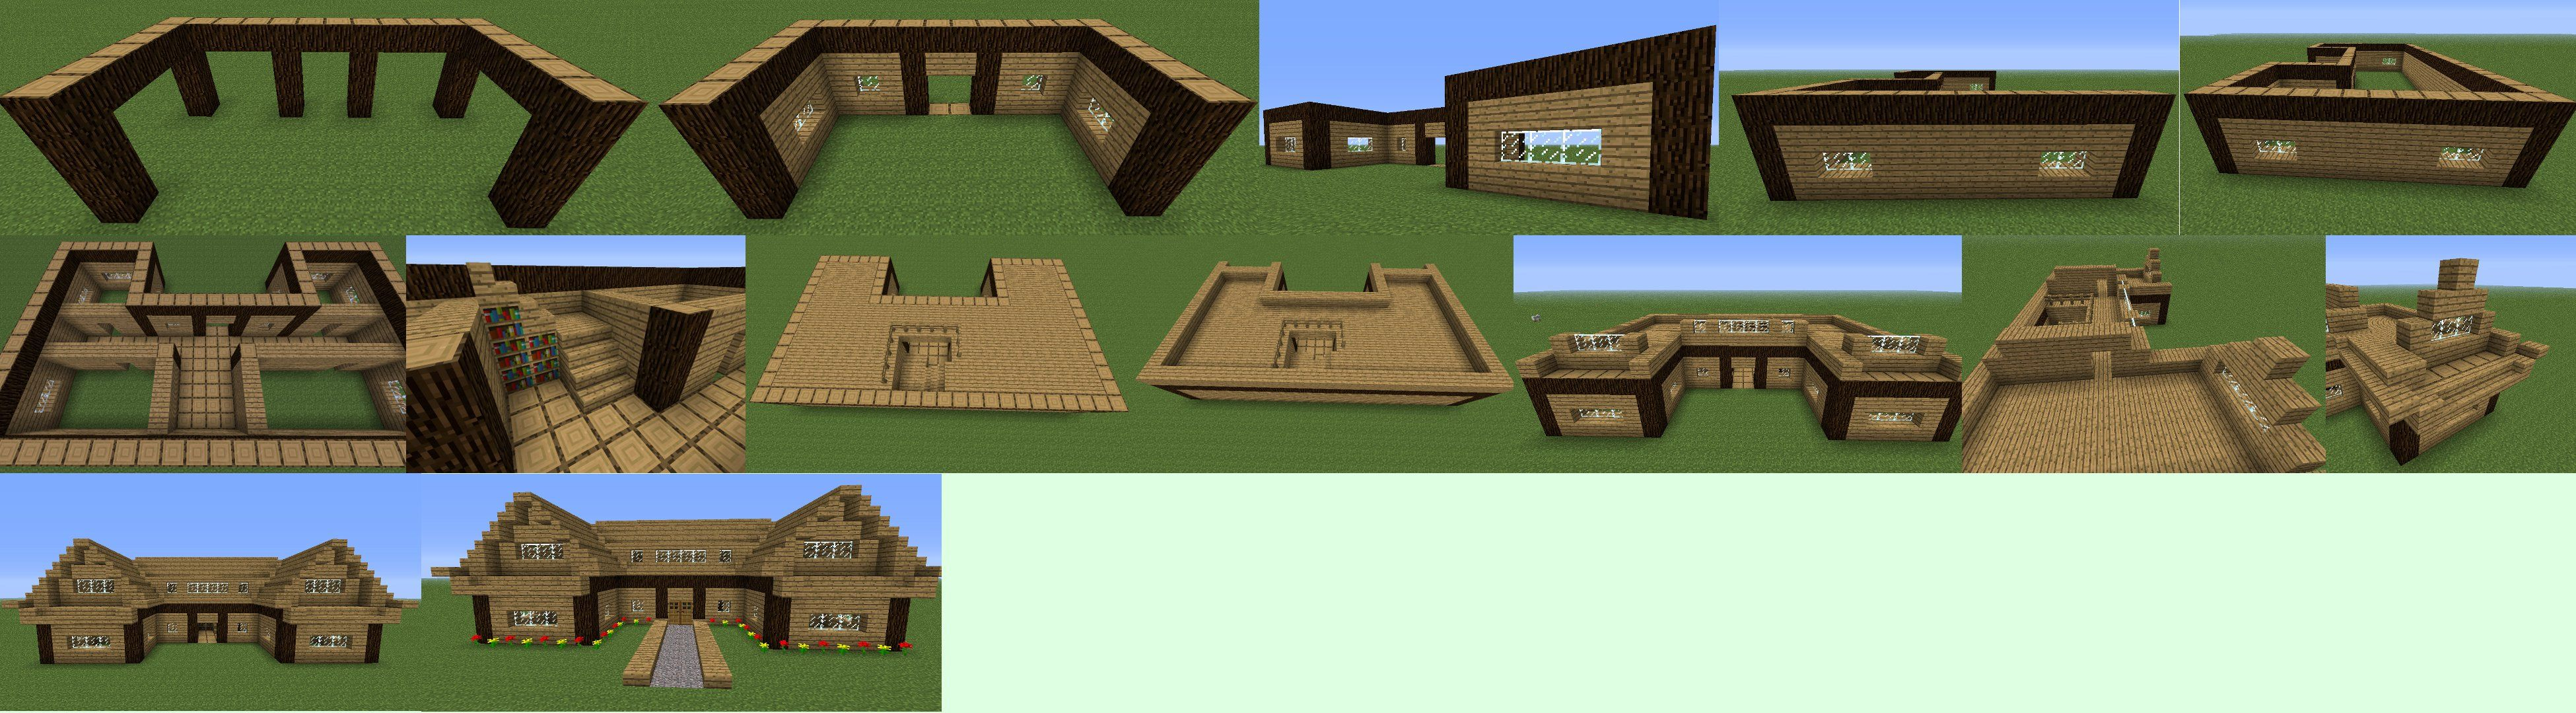 Minecraft houses step by step google search minecraft for How to build a house step by step